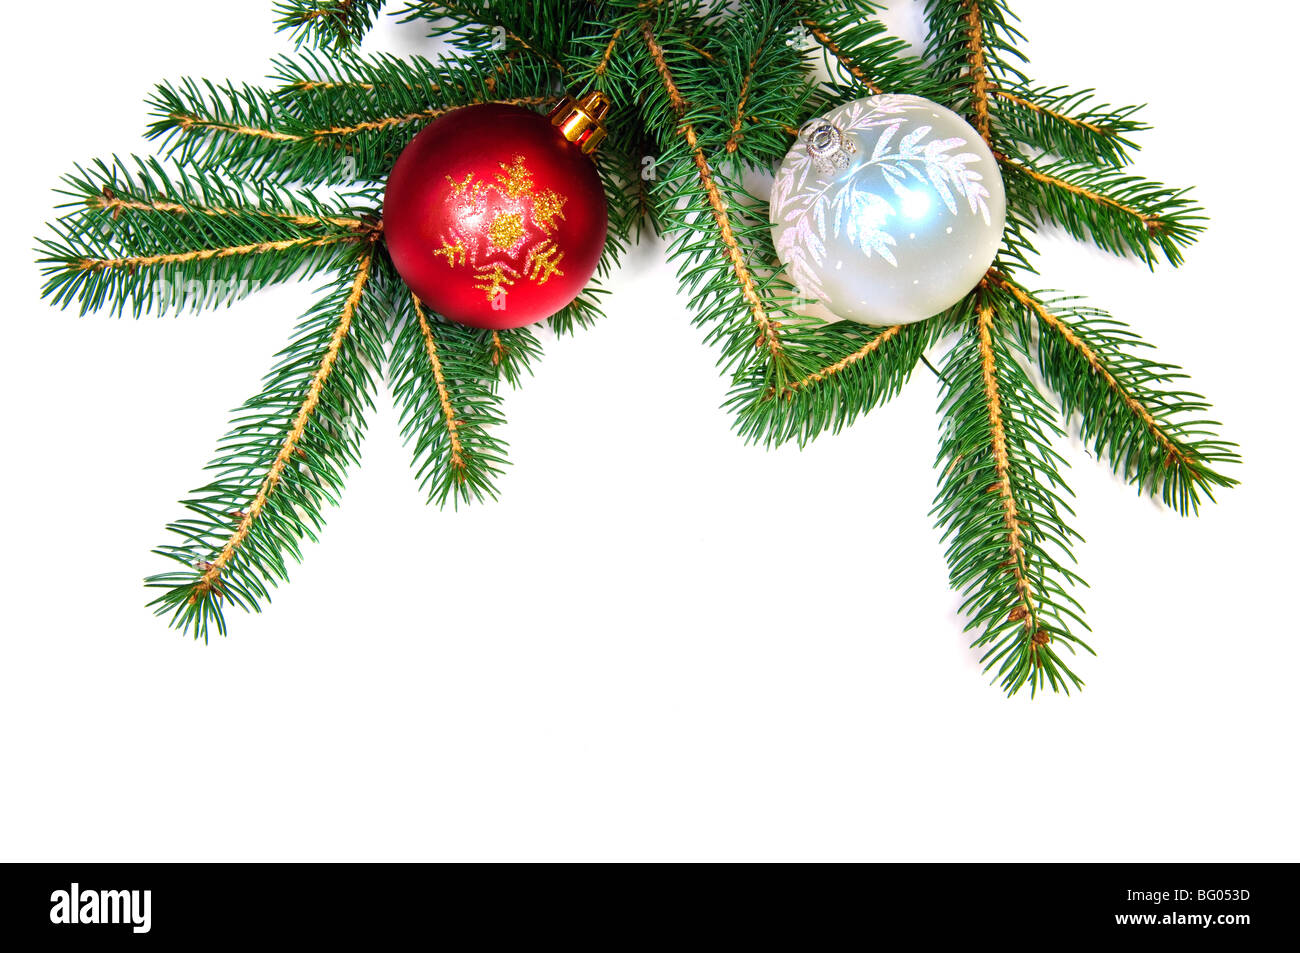 Christmas balls on fir tree branch on white background - Stock Image